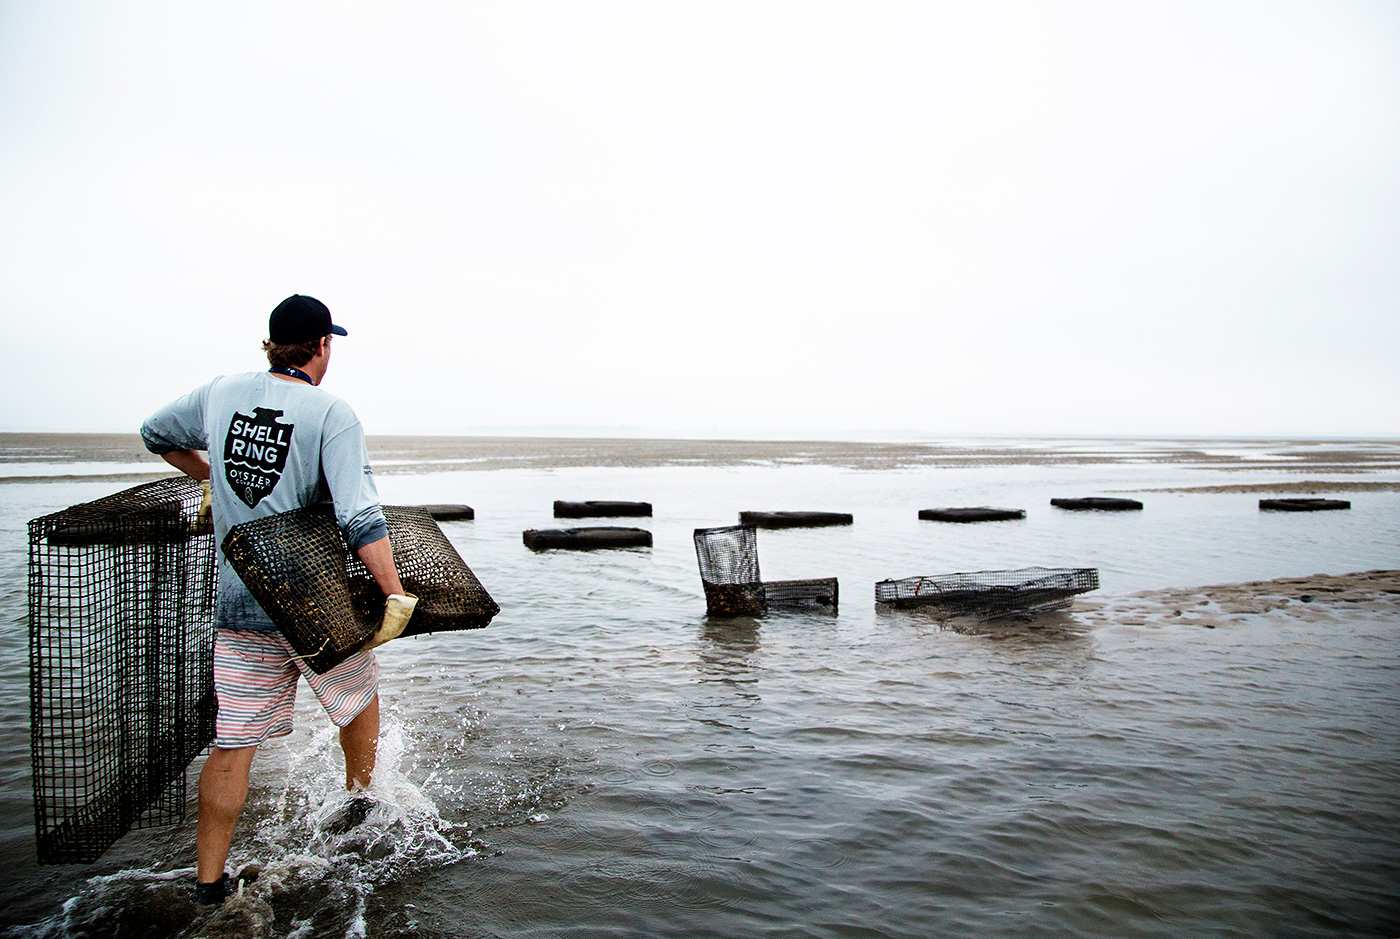 Advertising assignment shot in Beaufort, South Carolina for regional Oyster farm who specializes in sustainable agriculture.